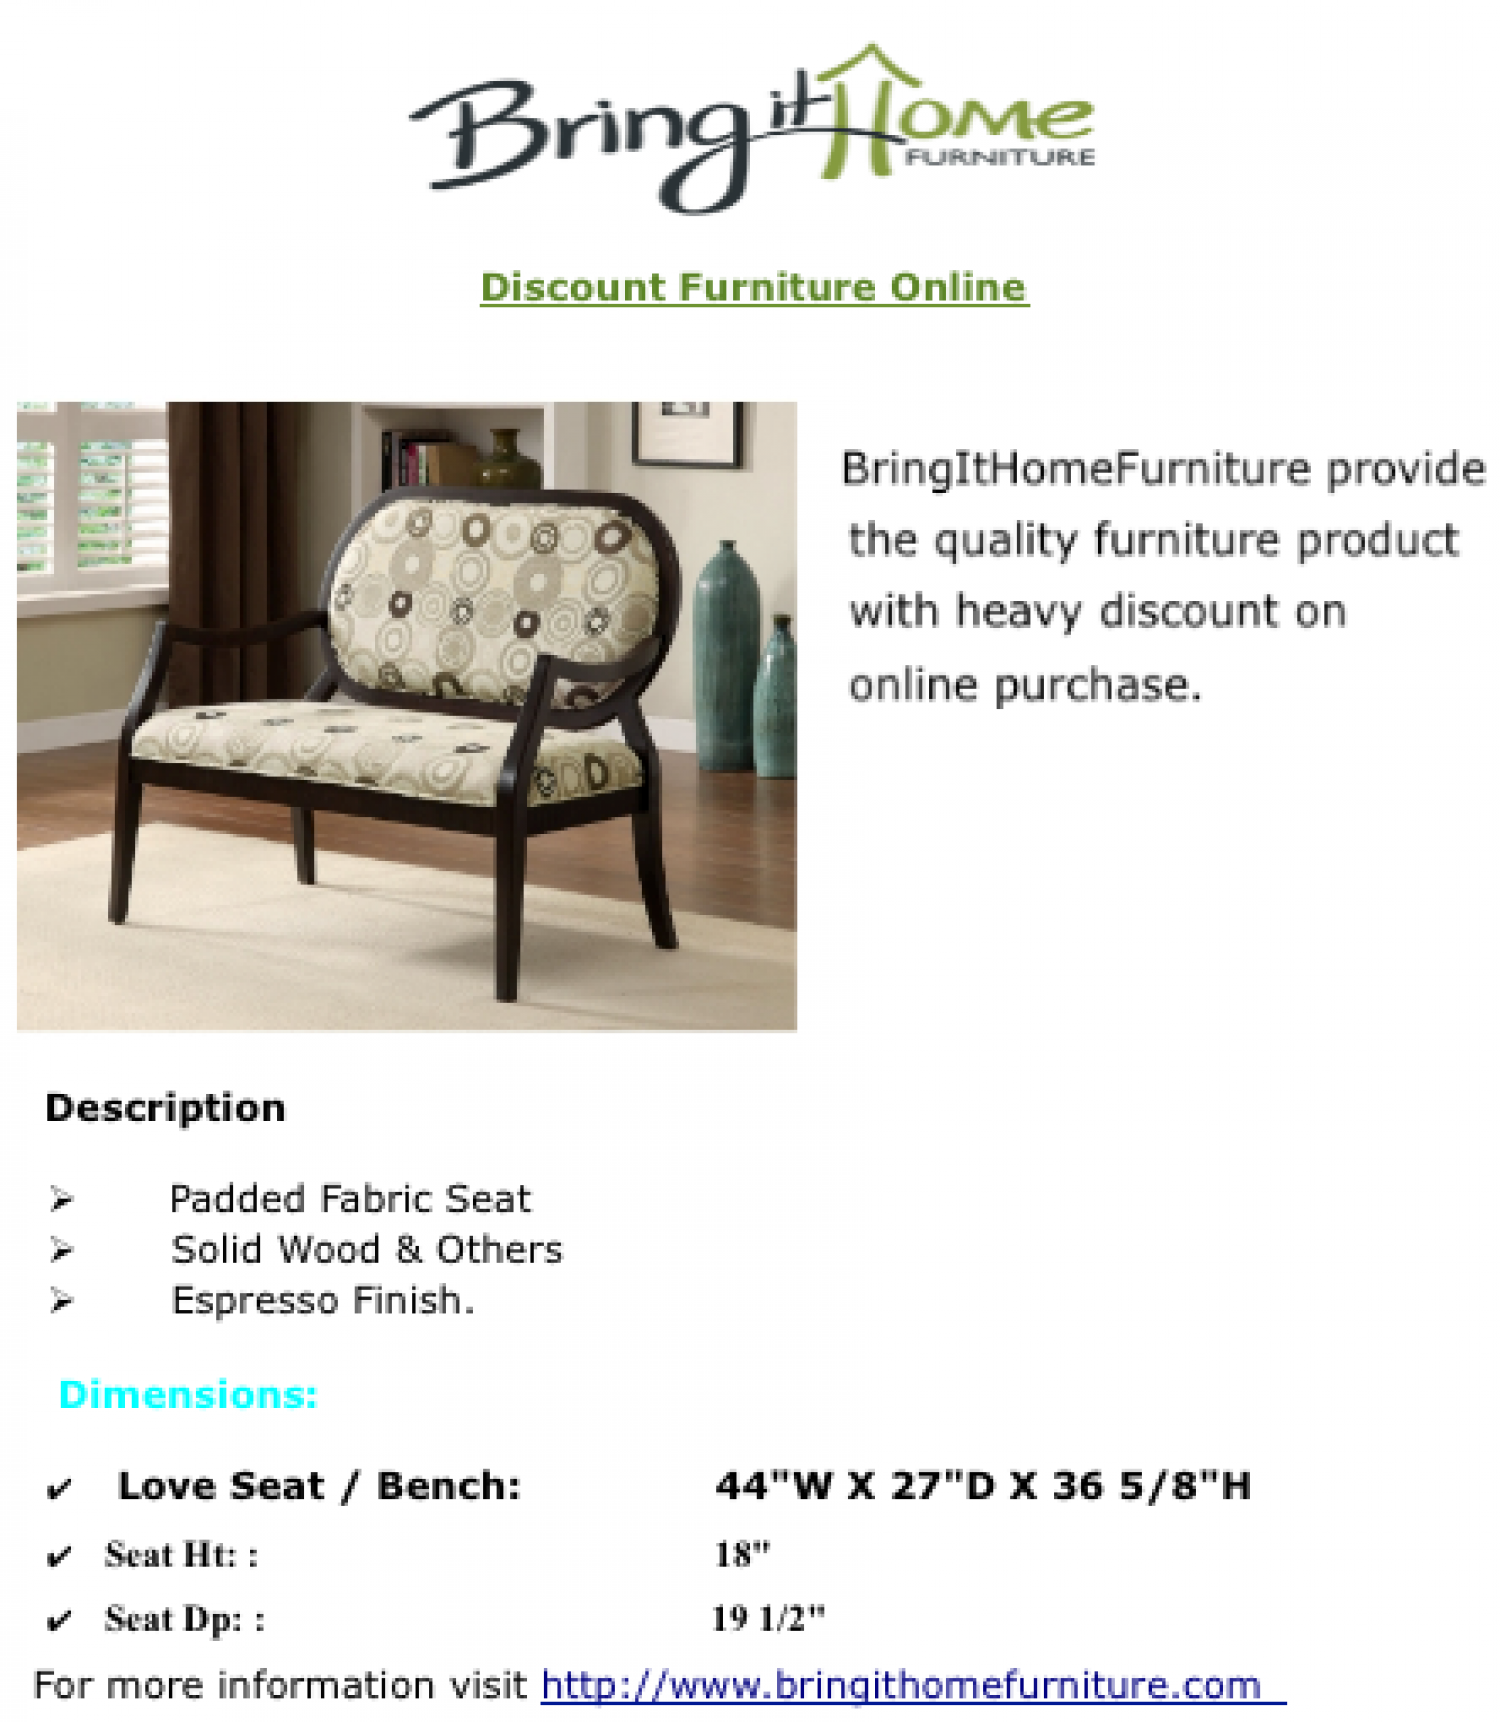 Discount Furniture Online